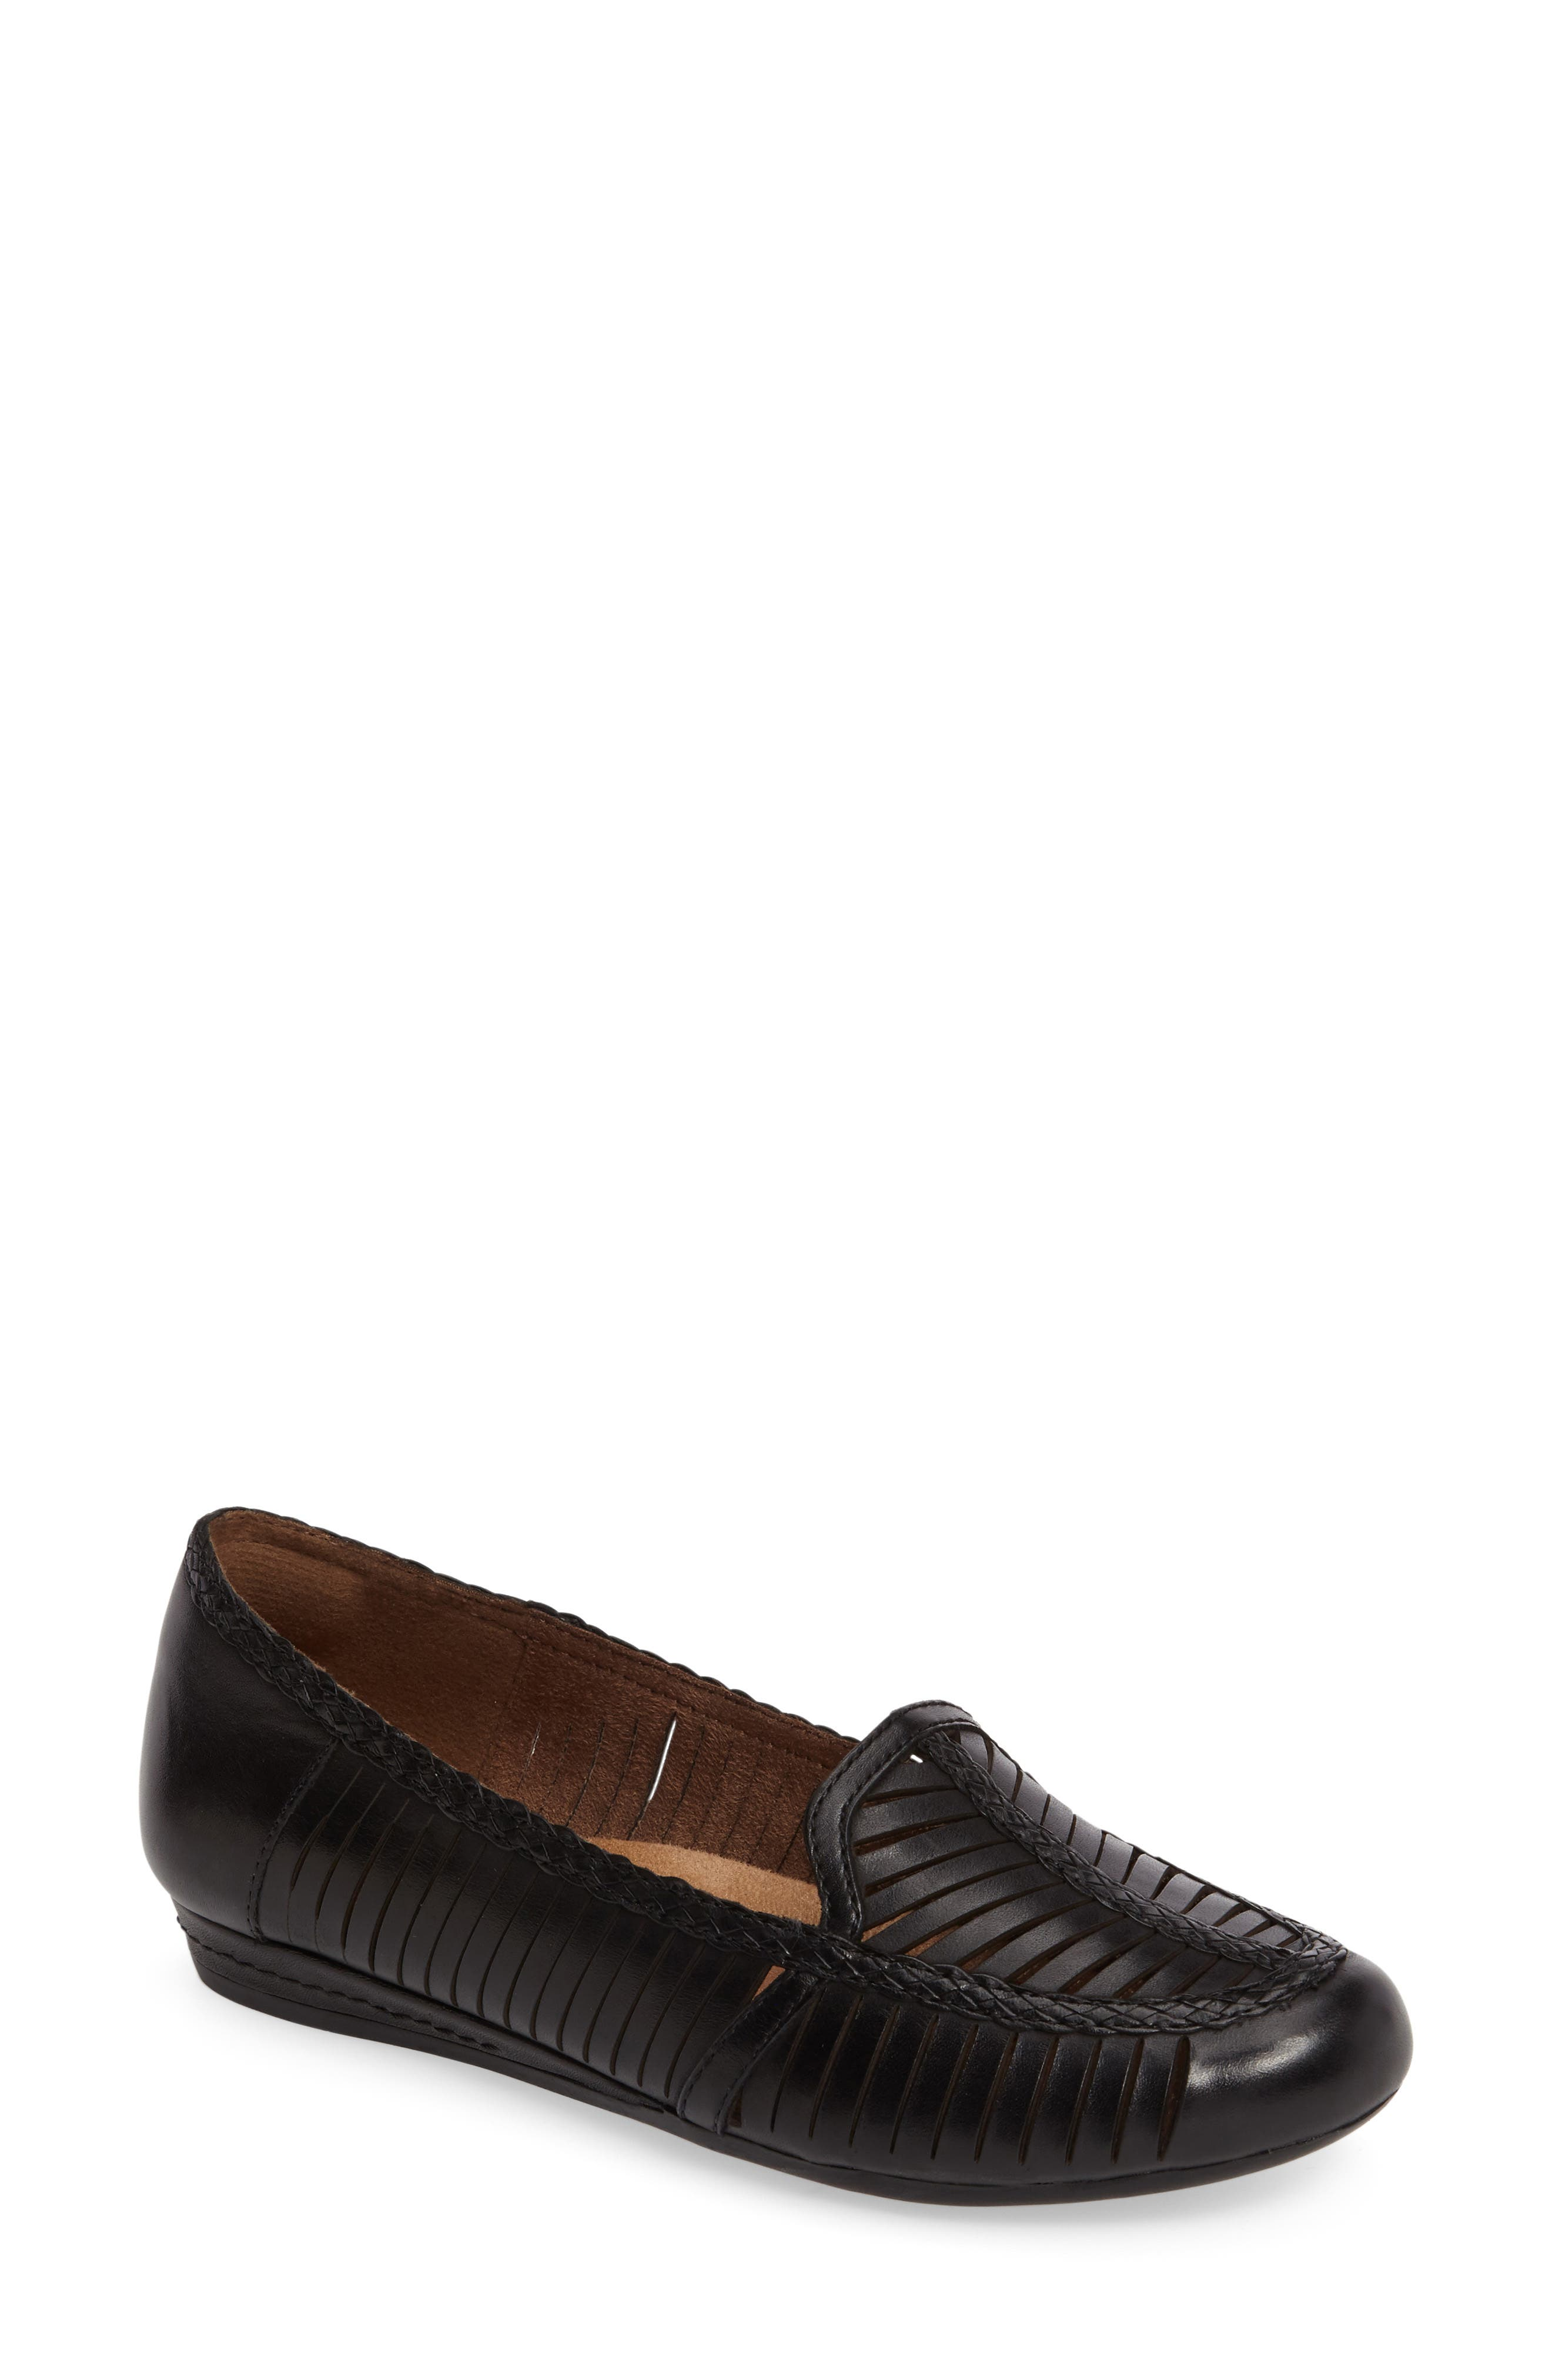 Galway Loafer,                             Main thumbnail 1, color,                             001